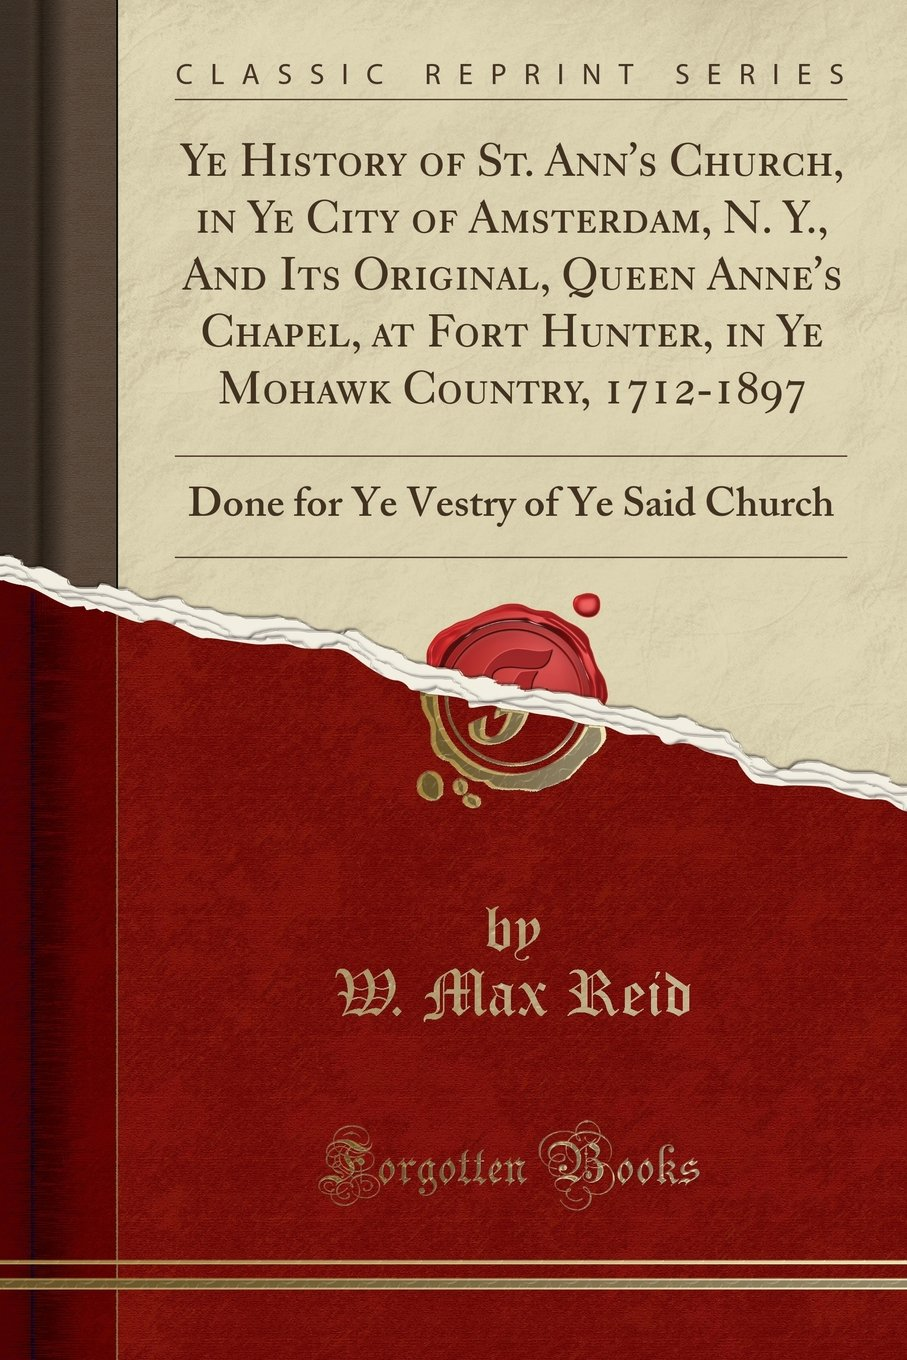 Ye History of St. Ann's Church, in Ye City of Amsterdam, N. Y, And Its Original, Queen Anne's Chapel, at Fort Hunter, in Ye Mohawk Country. Ye Vestry of Ye Said Church (Classic Reprint)